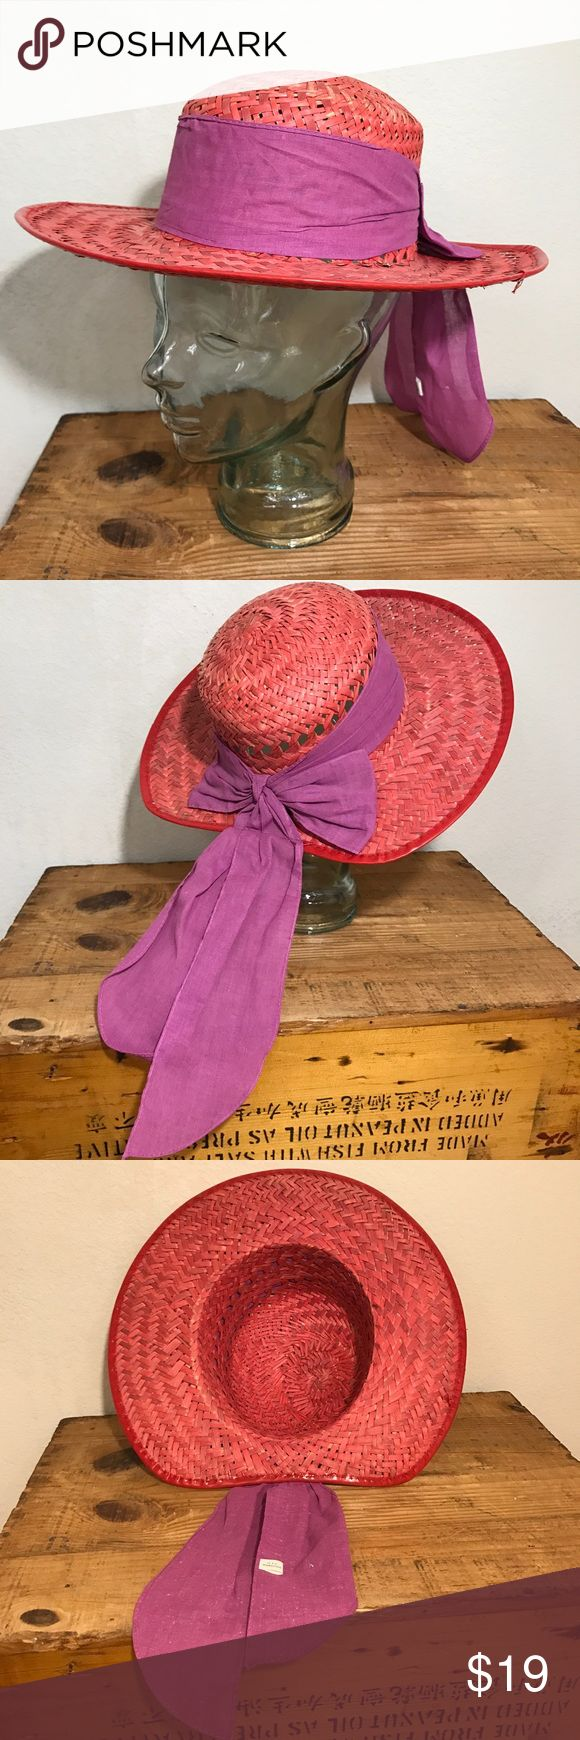 """Red Hat Society Hat With Purple Scarf Straw Hat Women's Red Hat With Purple Scarf Straw Hat Cotton Scarf Inside circumference approx 21"""" Red Hat Society Please see photos as we do consider them to be a part of the description. Accessories Hats"""